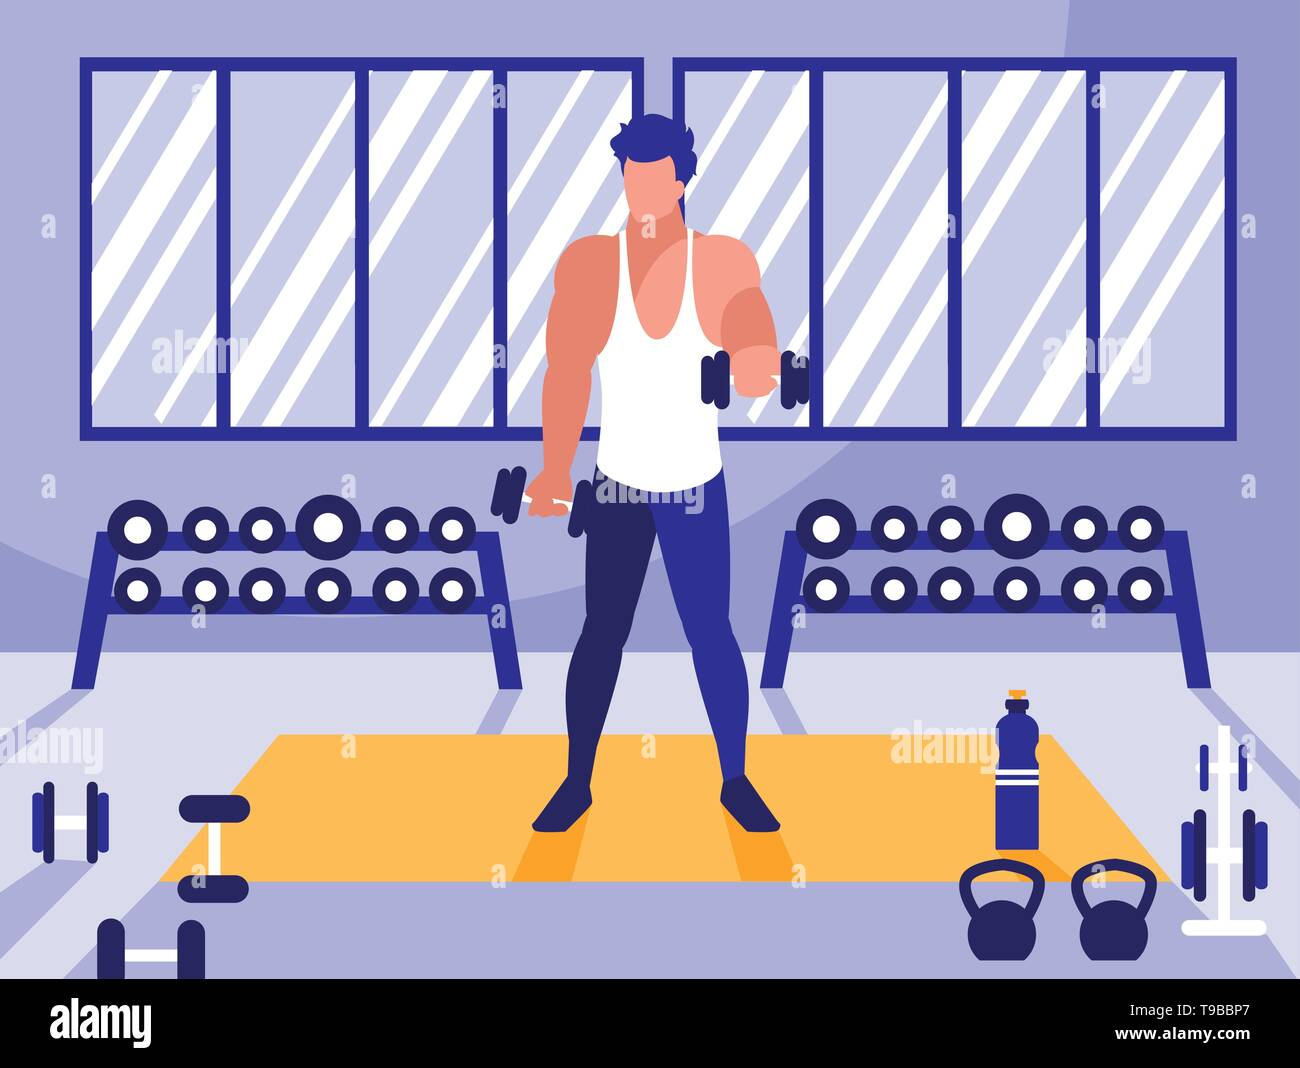 young man lifting dumbbells in gym vector illustration design - Stock Image